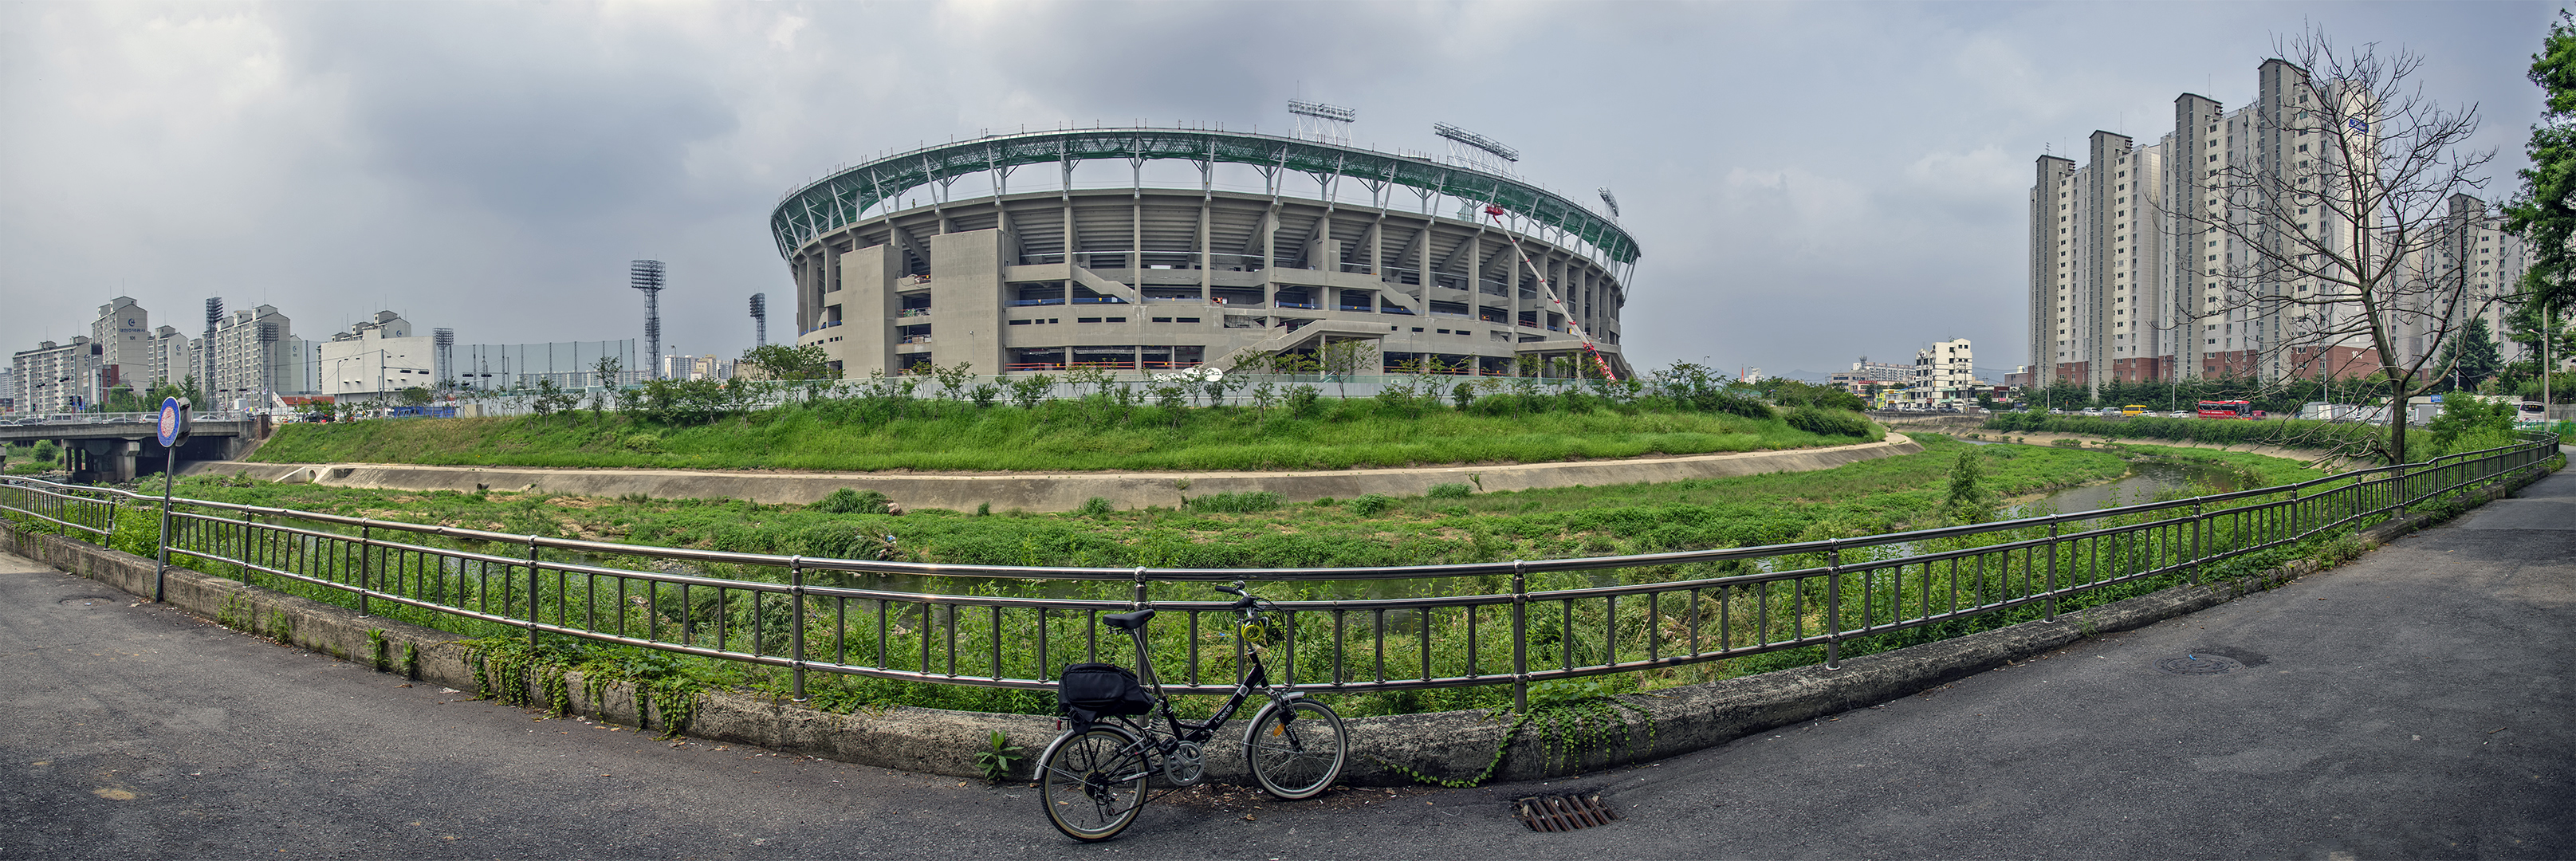 an analysis of baseball stadiums Design trends in sports stadiums amount of electricity and baseball games the structural indoor stadium at cuttack, india is to keep it operating current.